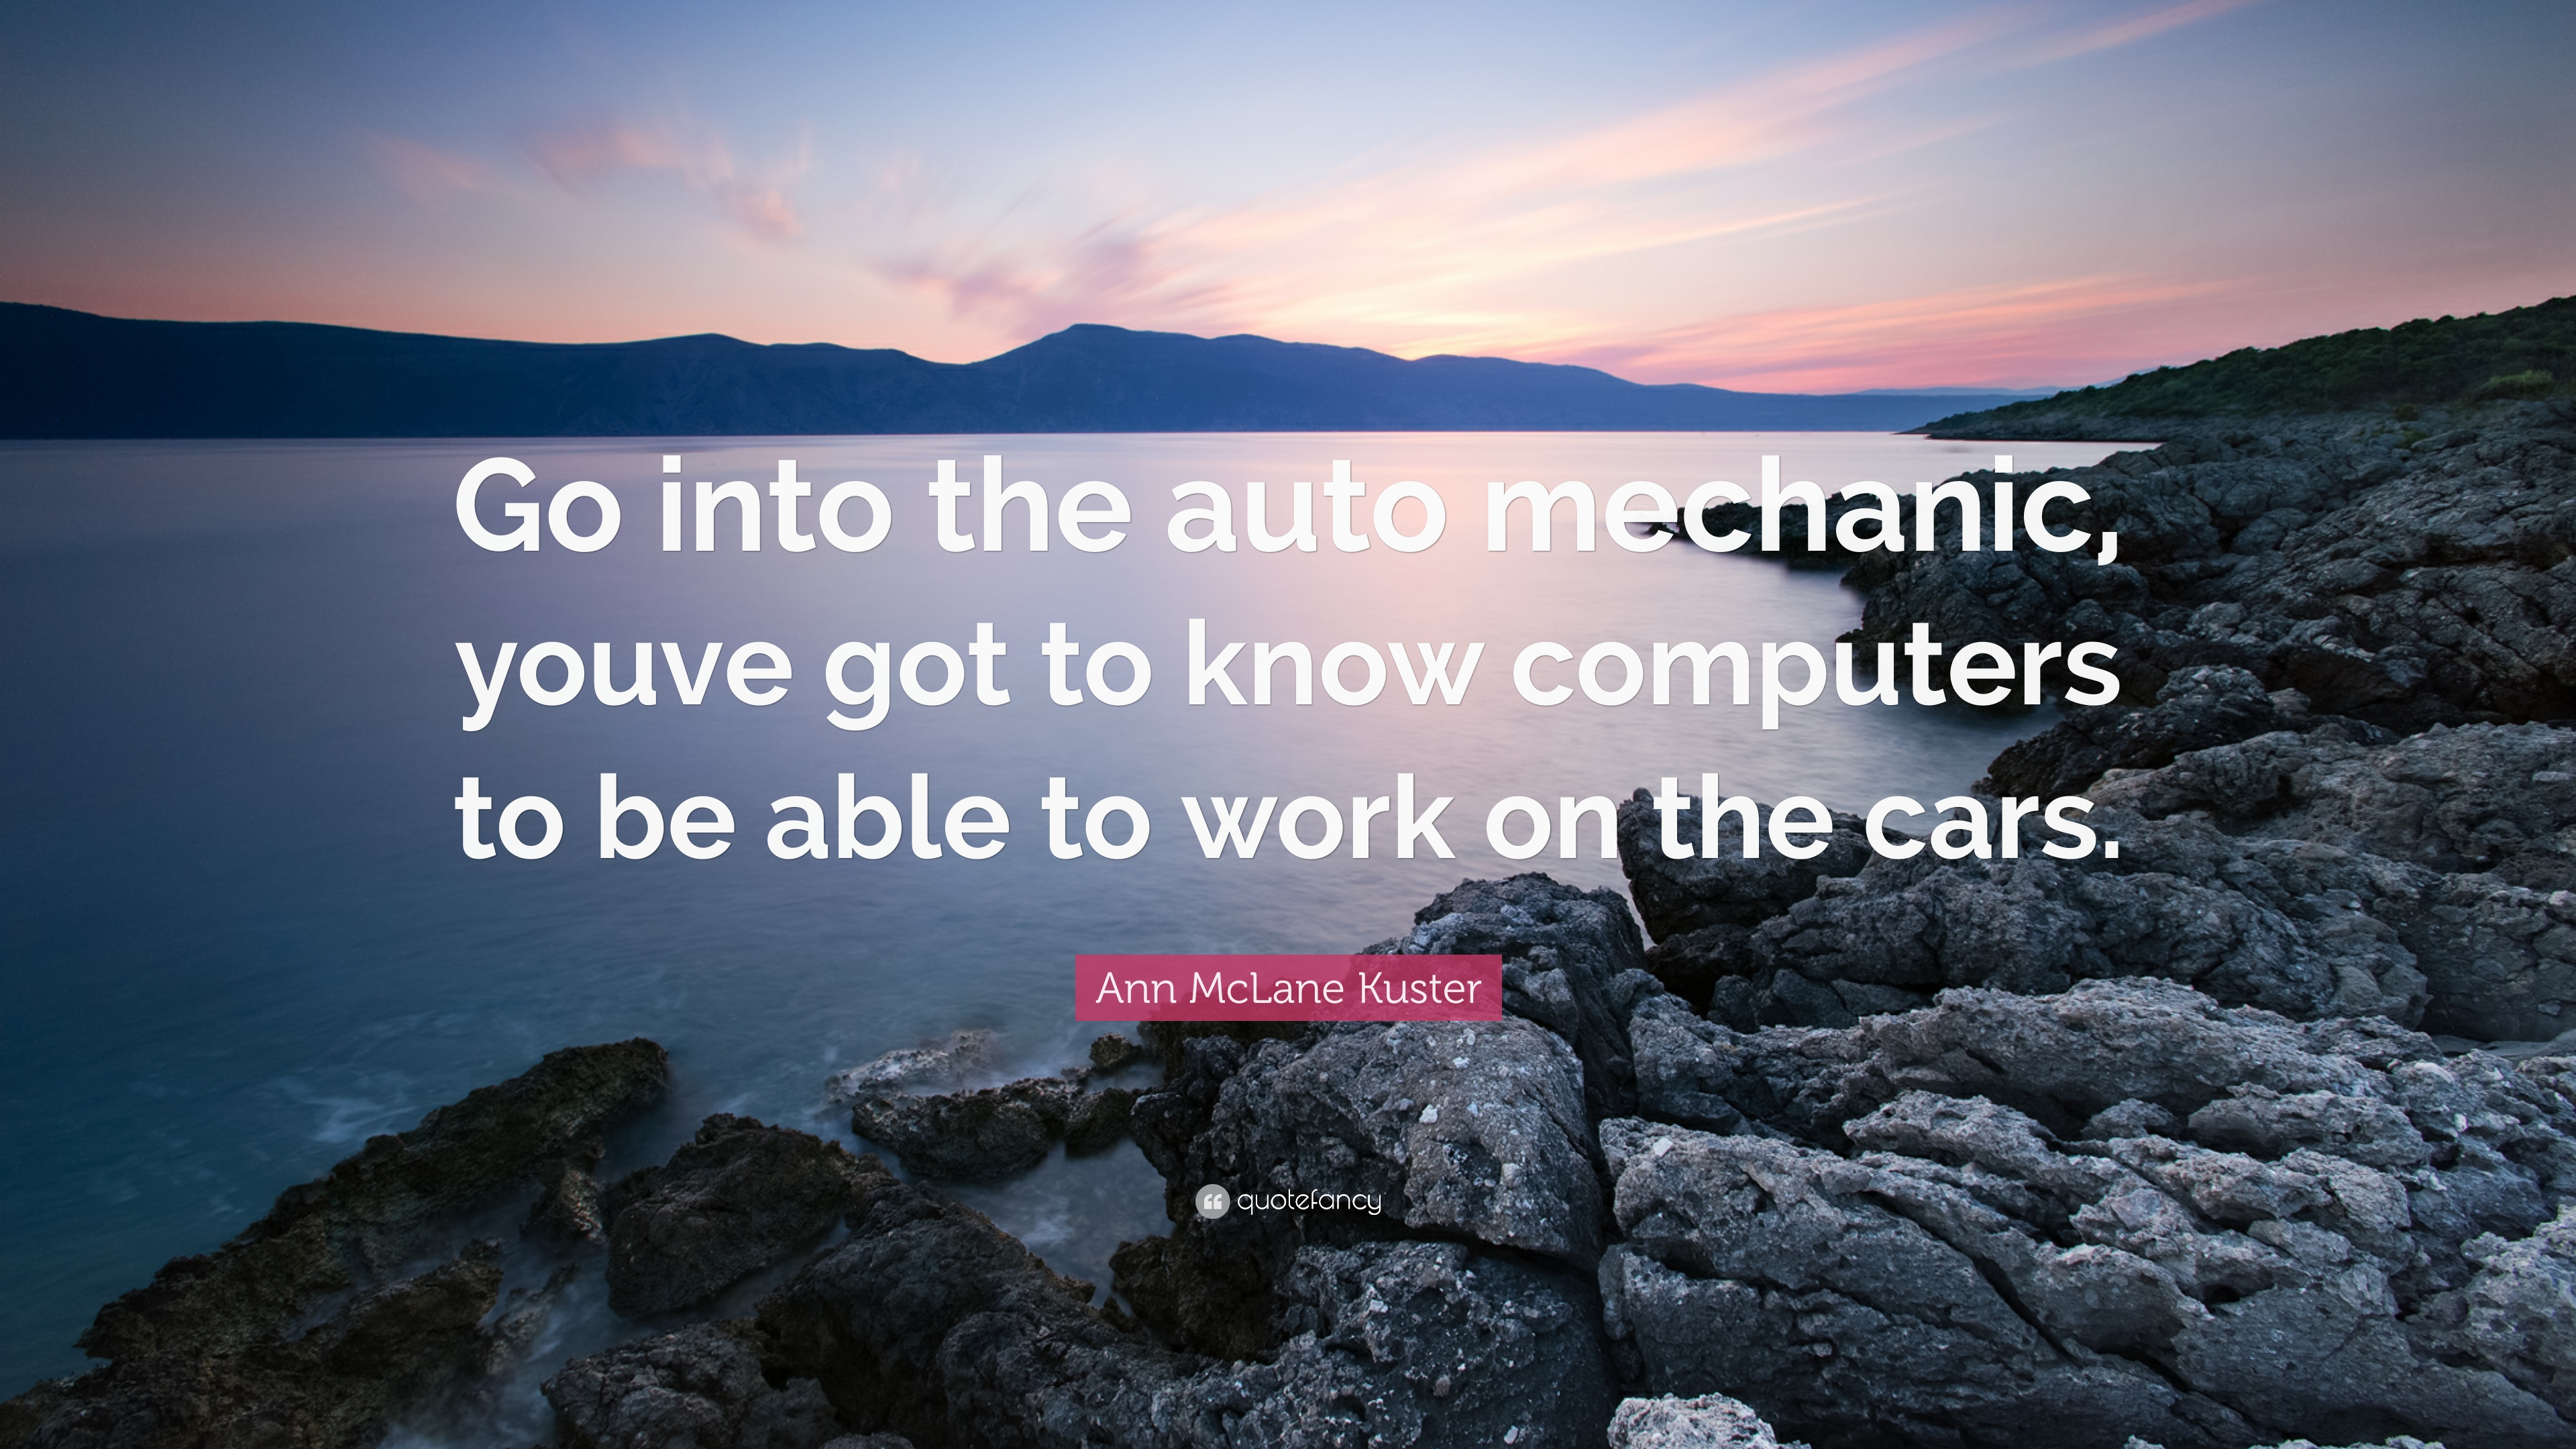 Mechanic Quotes Ann Mclane Kuster Quotes 6 Wallpapers  Quotefancy